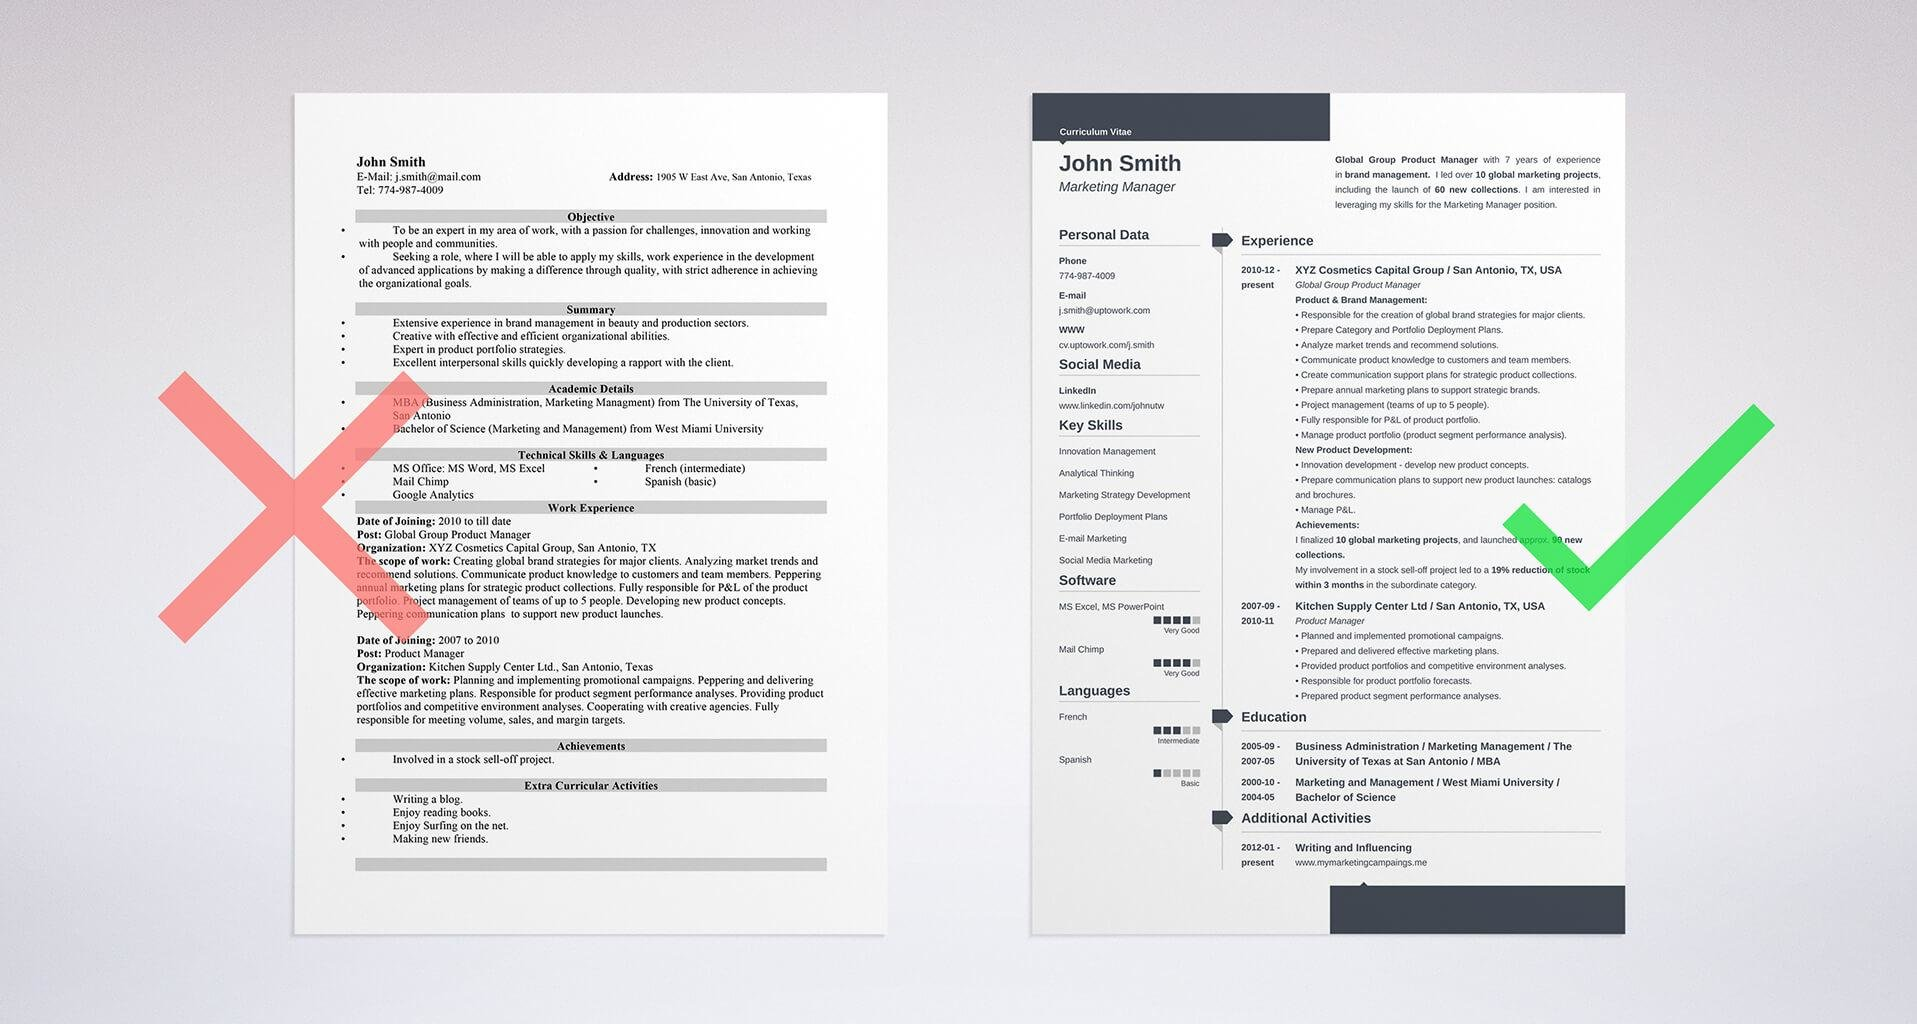 How to Put Your Education on a Resume [Tips & Examples]